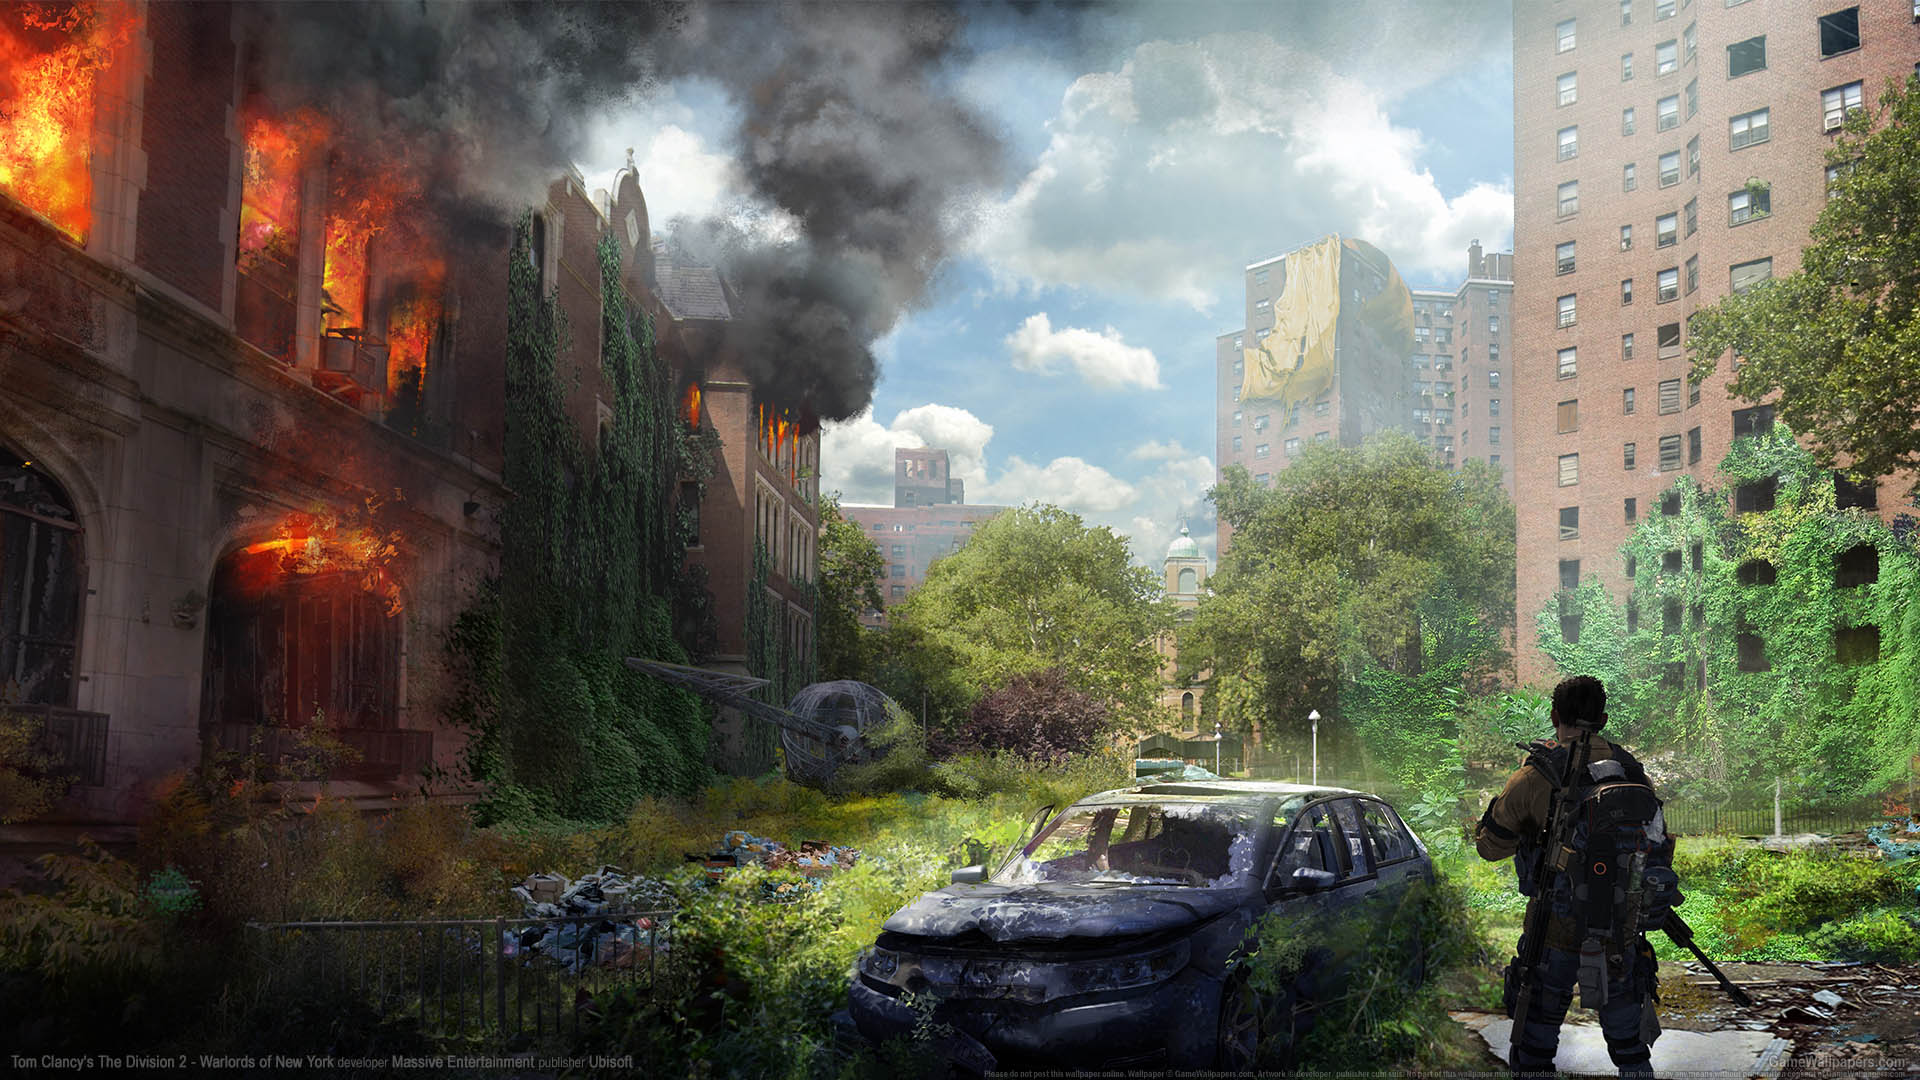 Tom Clancy's The Division 2 - Warlords of New York Hintergrundbild 03 1920x1080